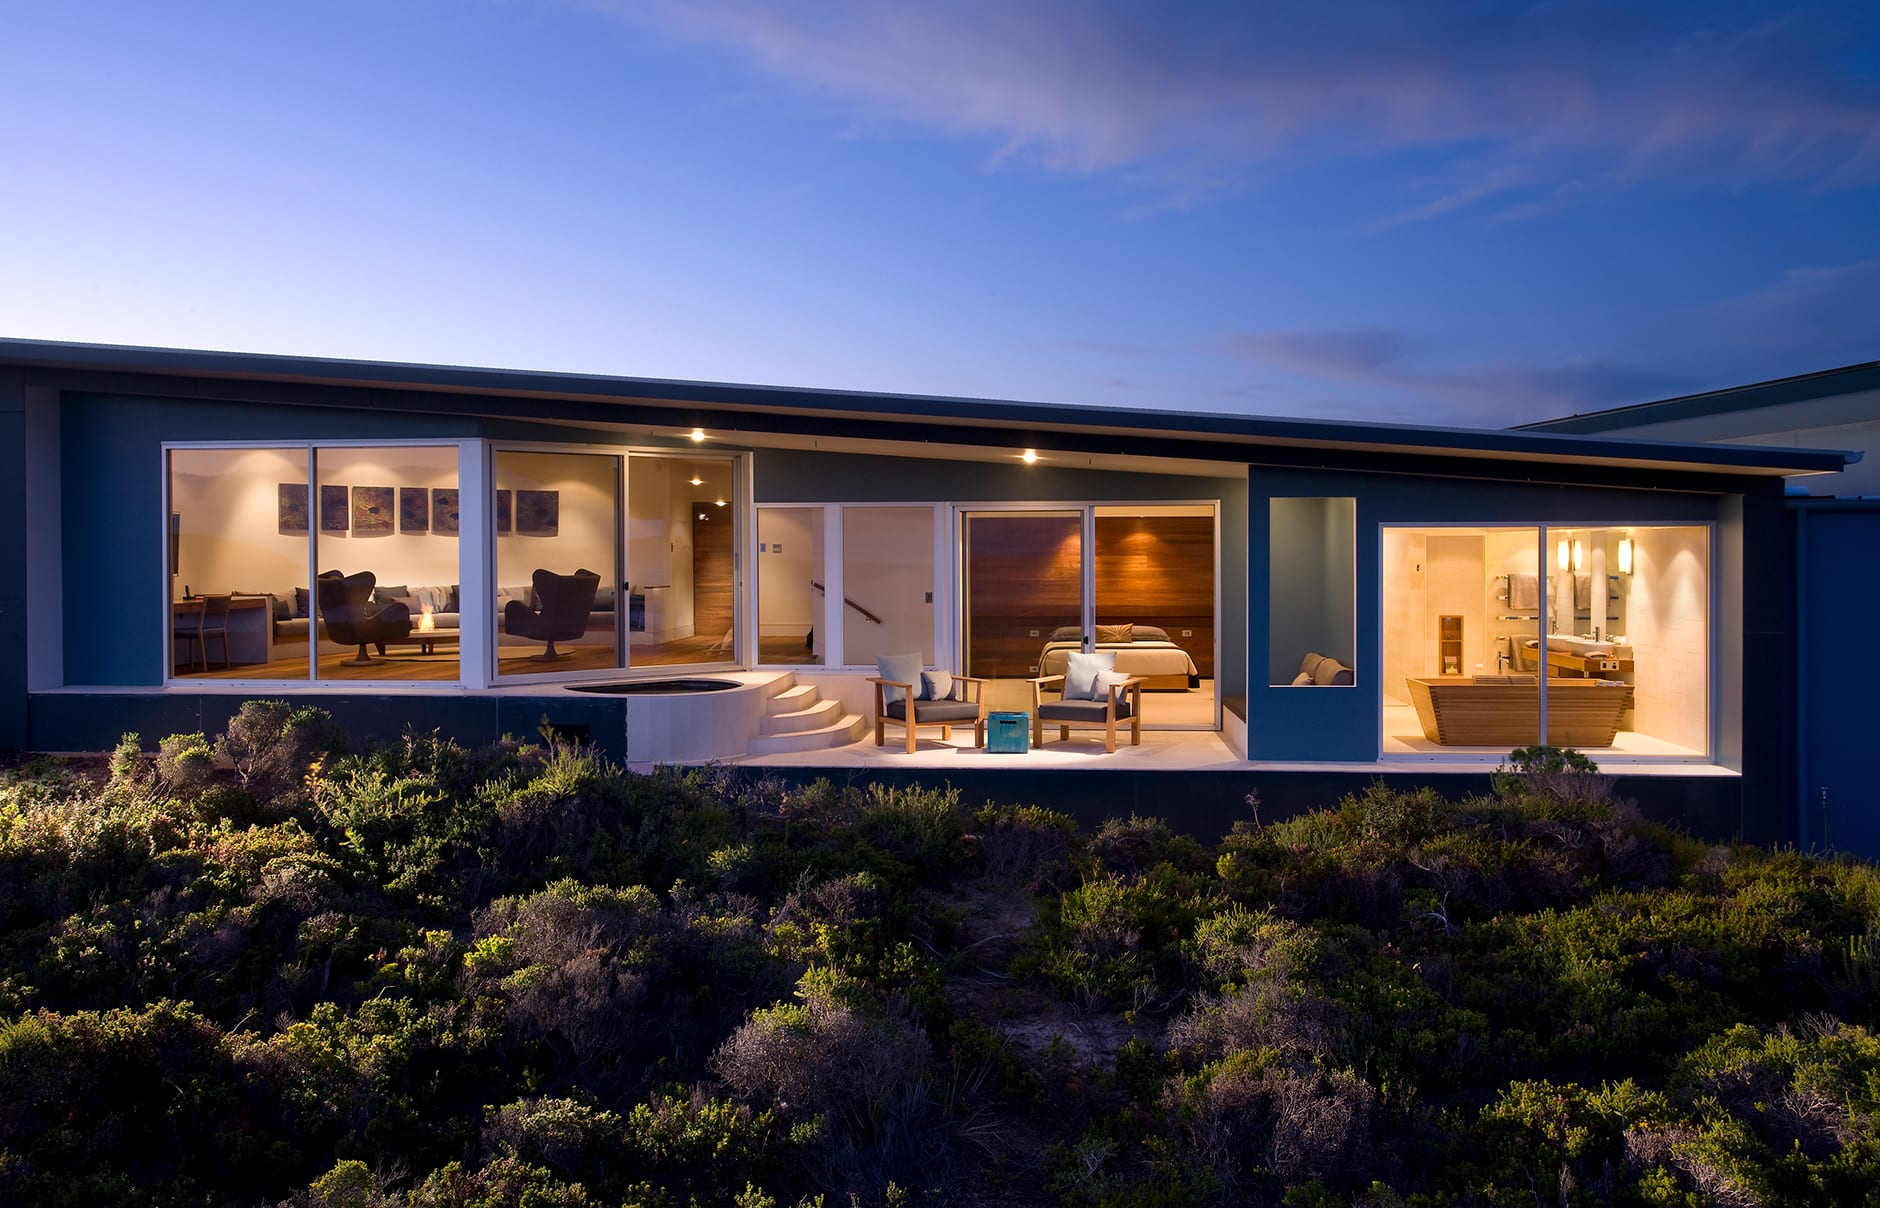 Remarkable Suite. Southern Ocean Lodge, Kangaroo Island, Australia. © Luxury Lodges of Australia